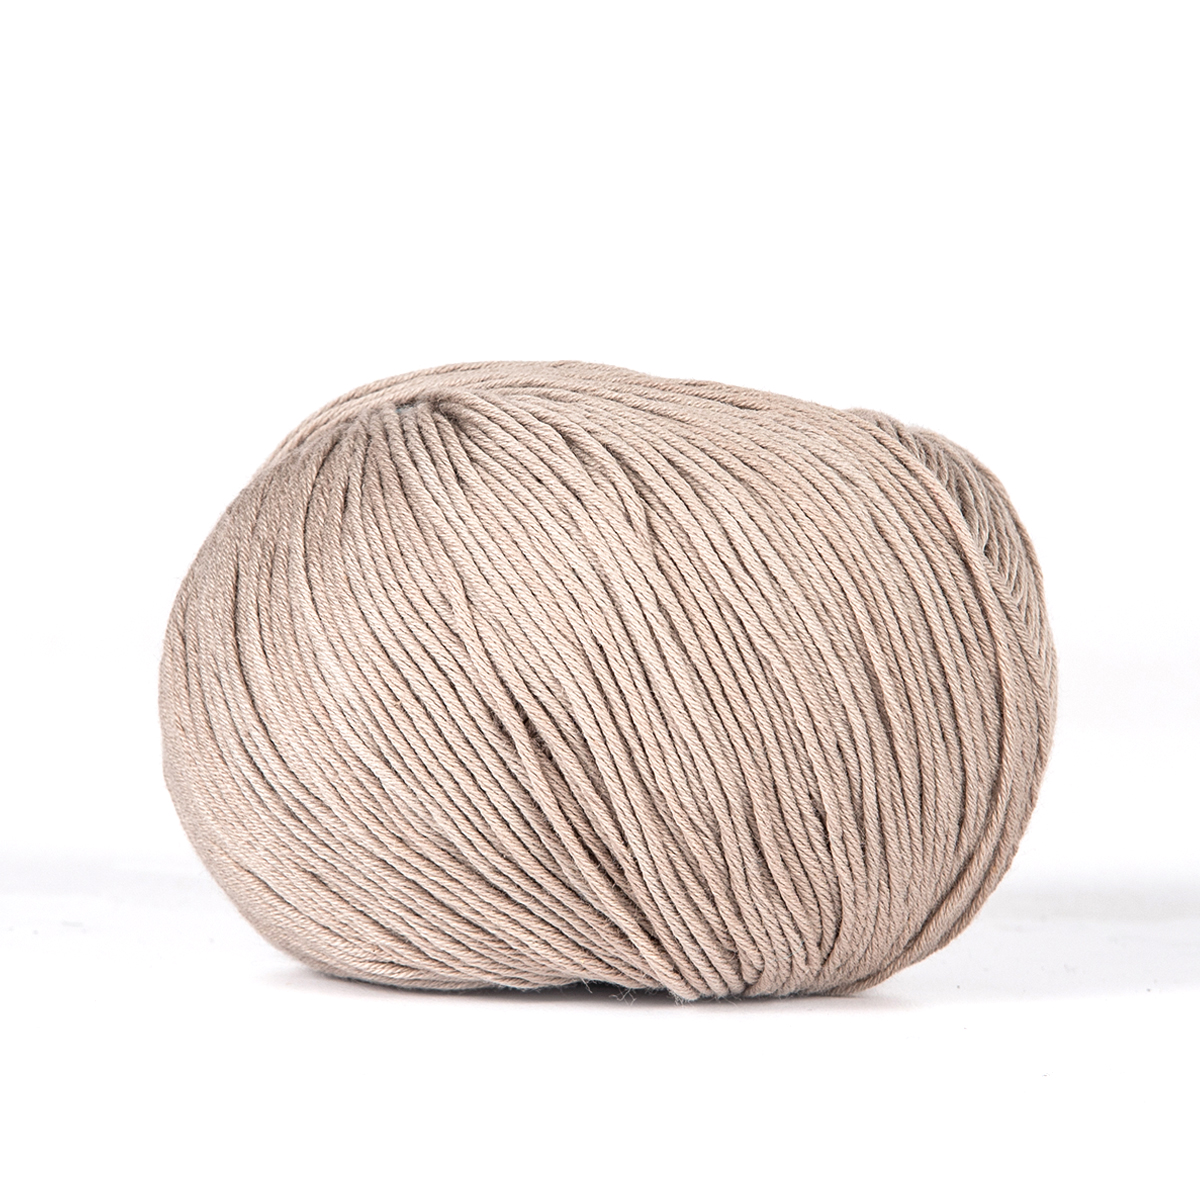 ALBA /     100% Organic Cotton  175 yds (160 m) / 50 gm ball